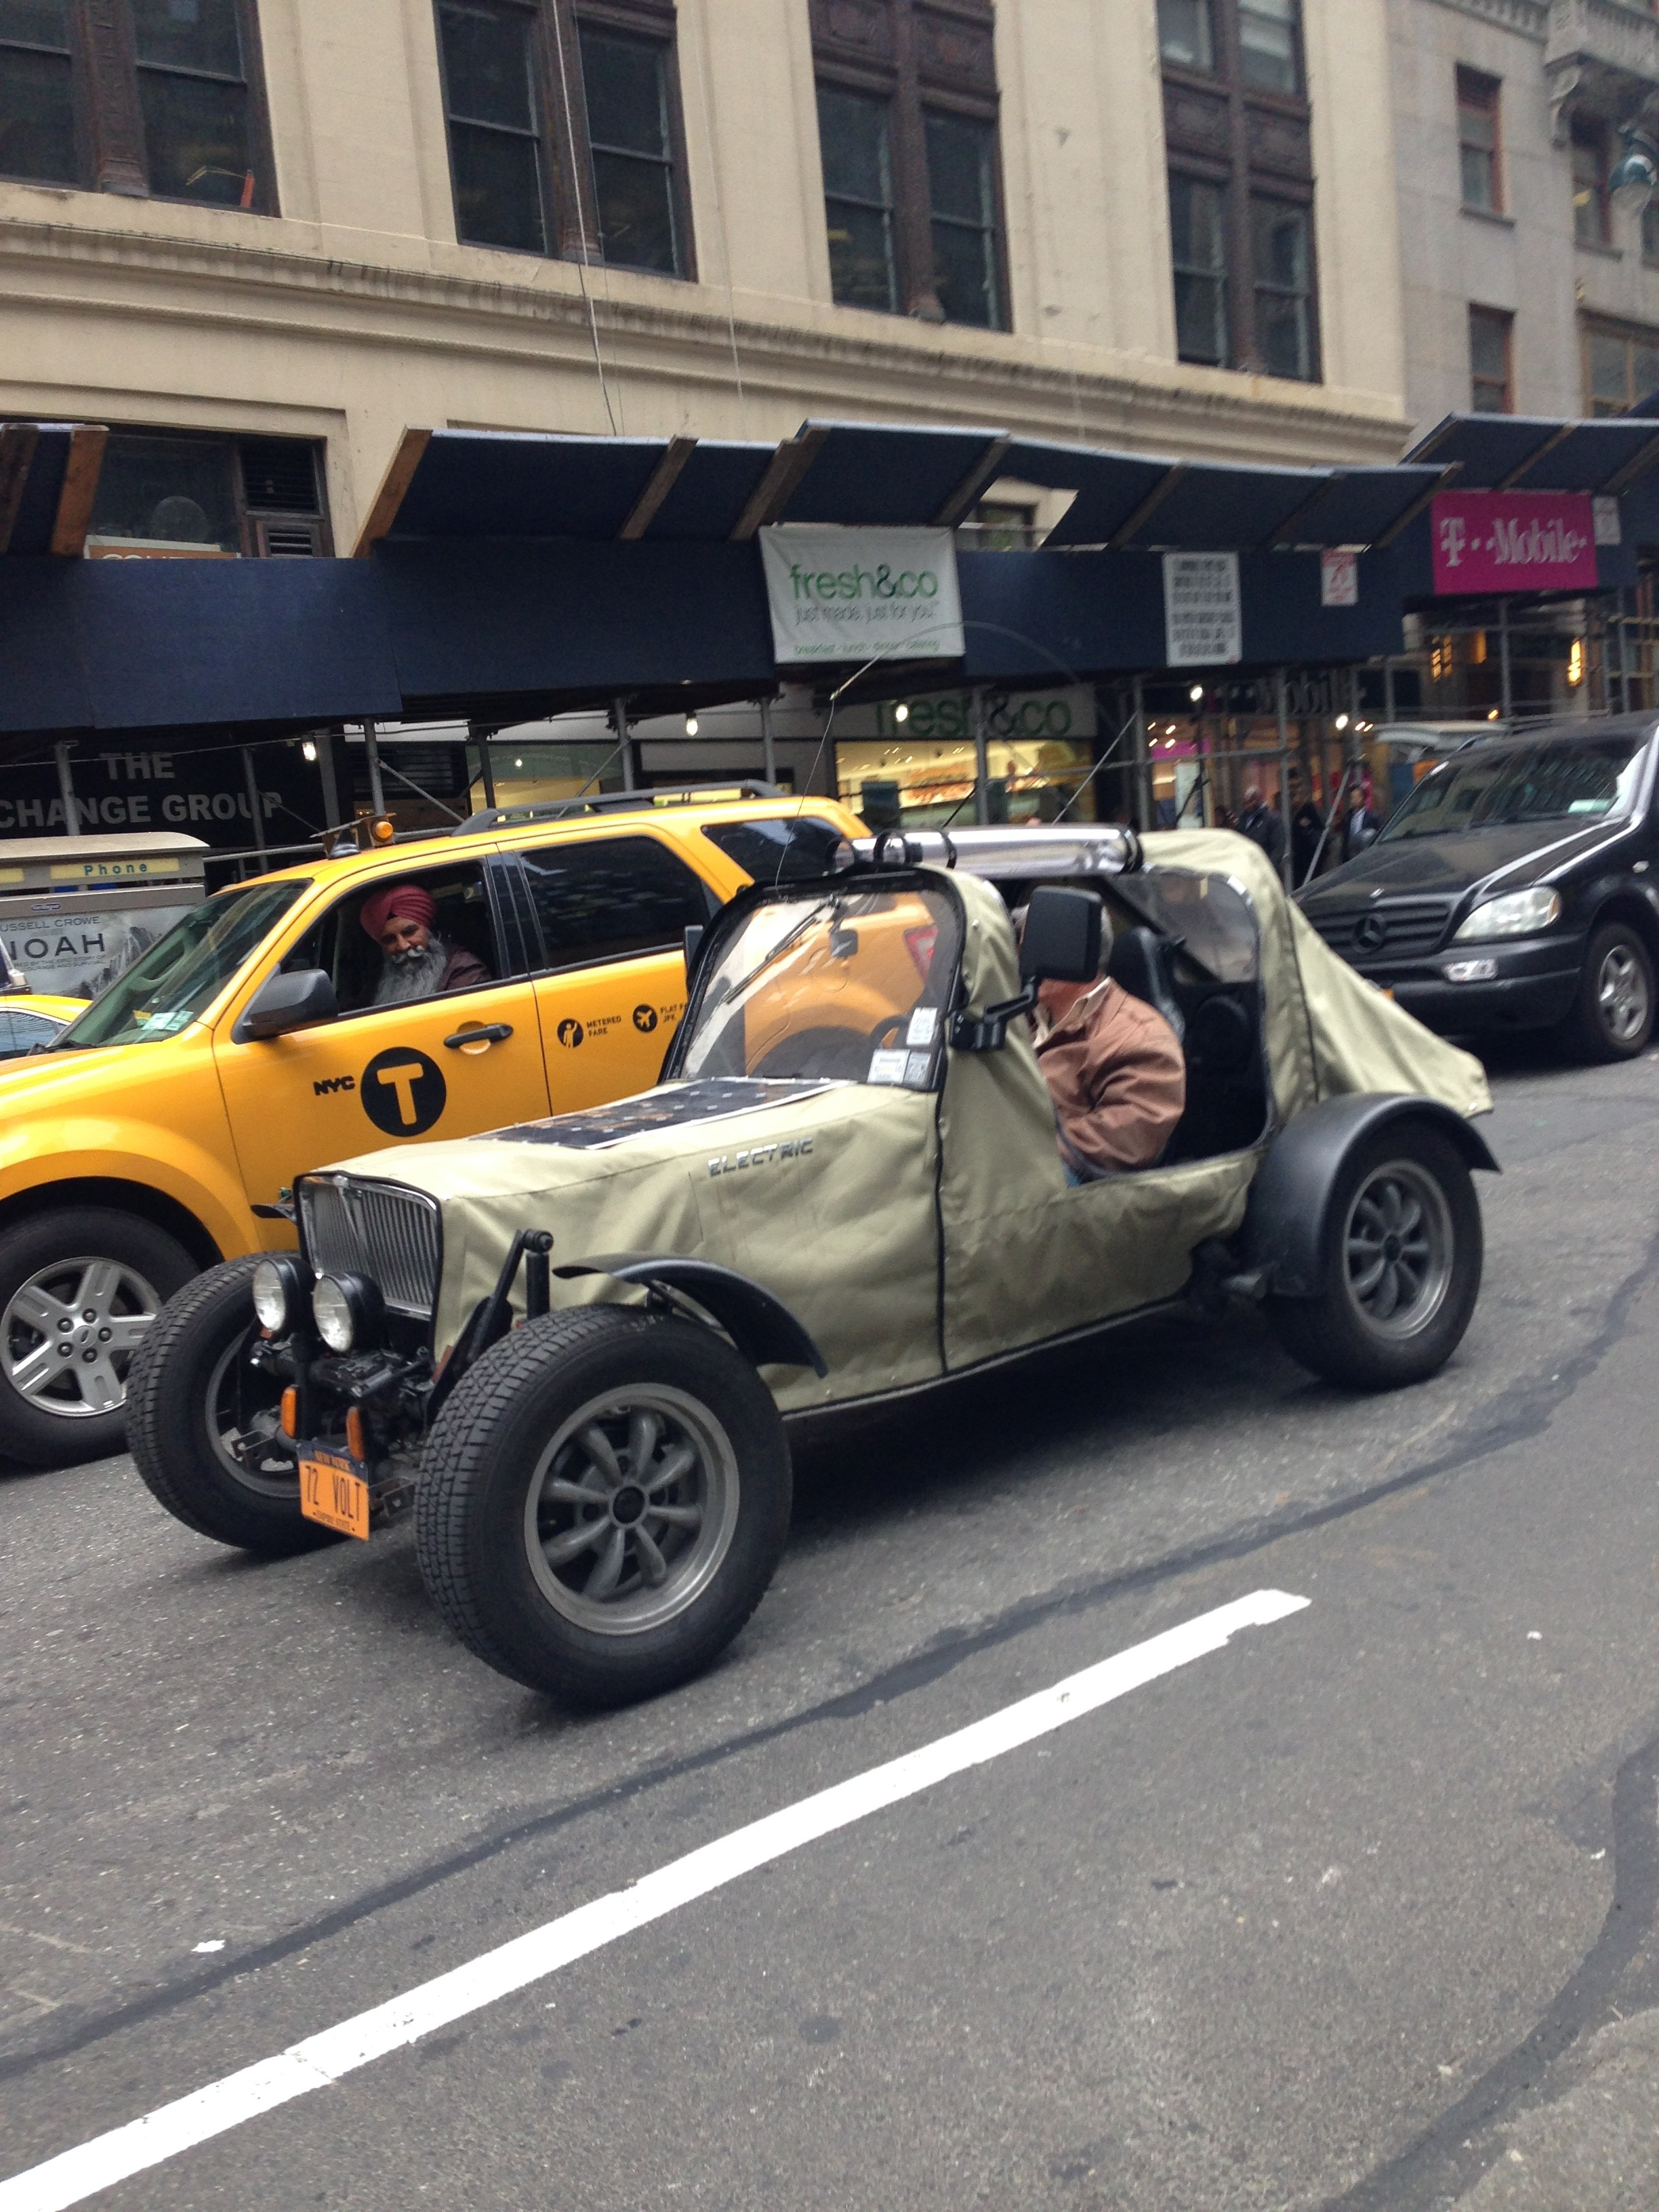 Second Sighting: Mysterious Homemade EV – East 64th Street, NYC